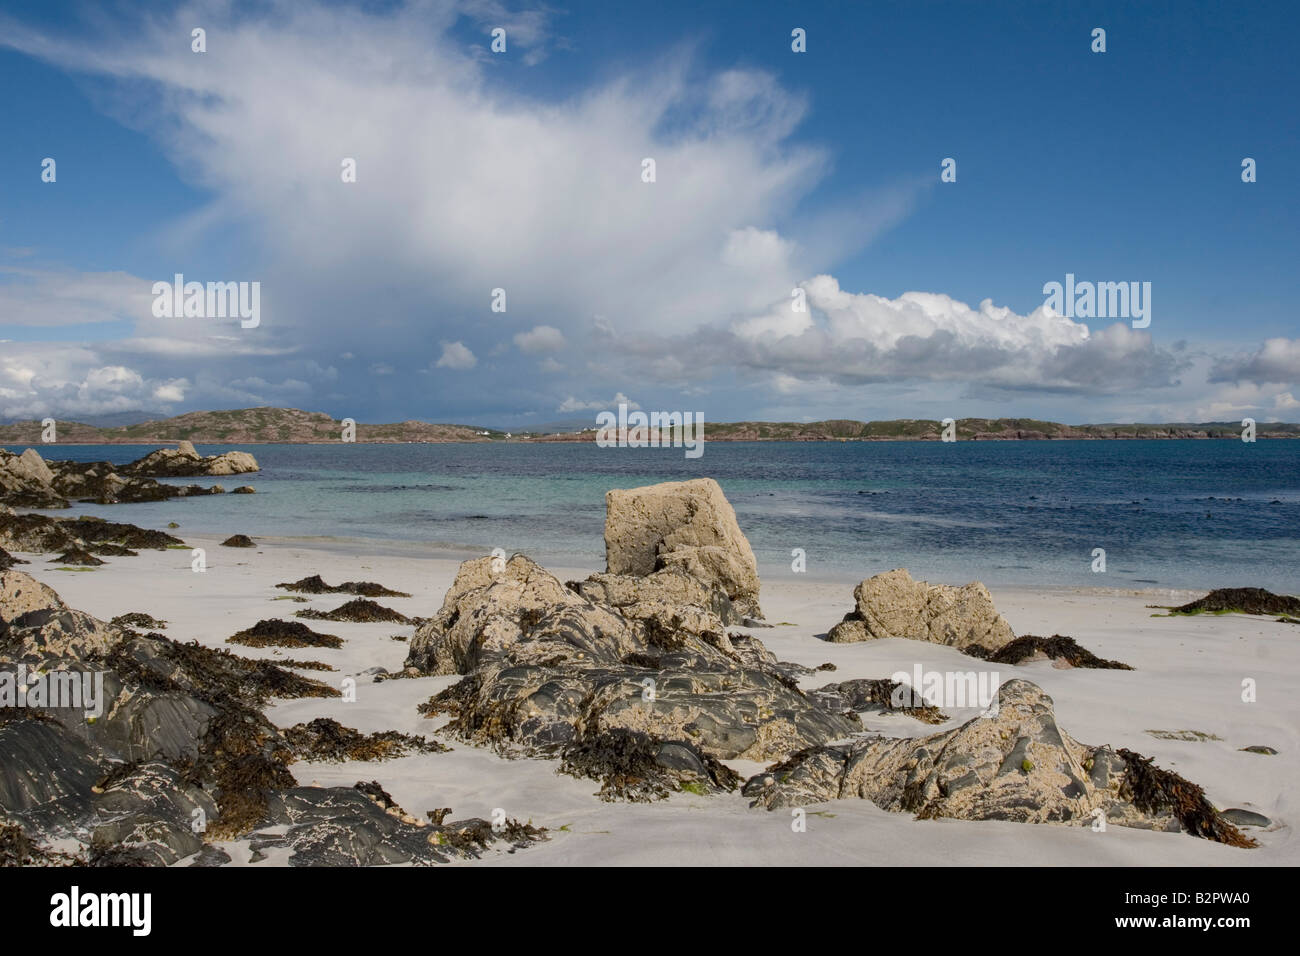 Clouds over Iona - Stock Image